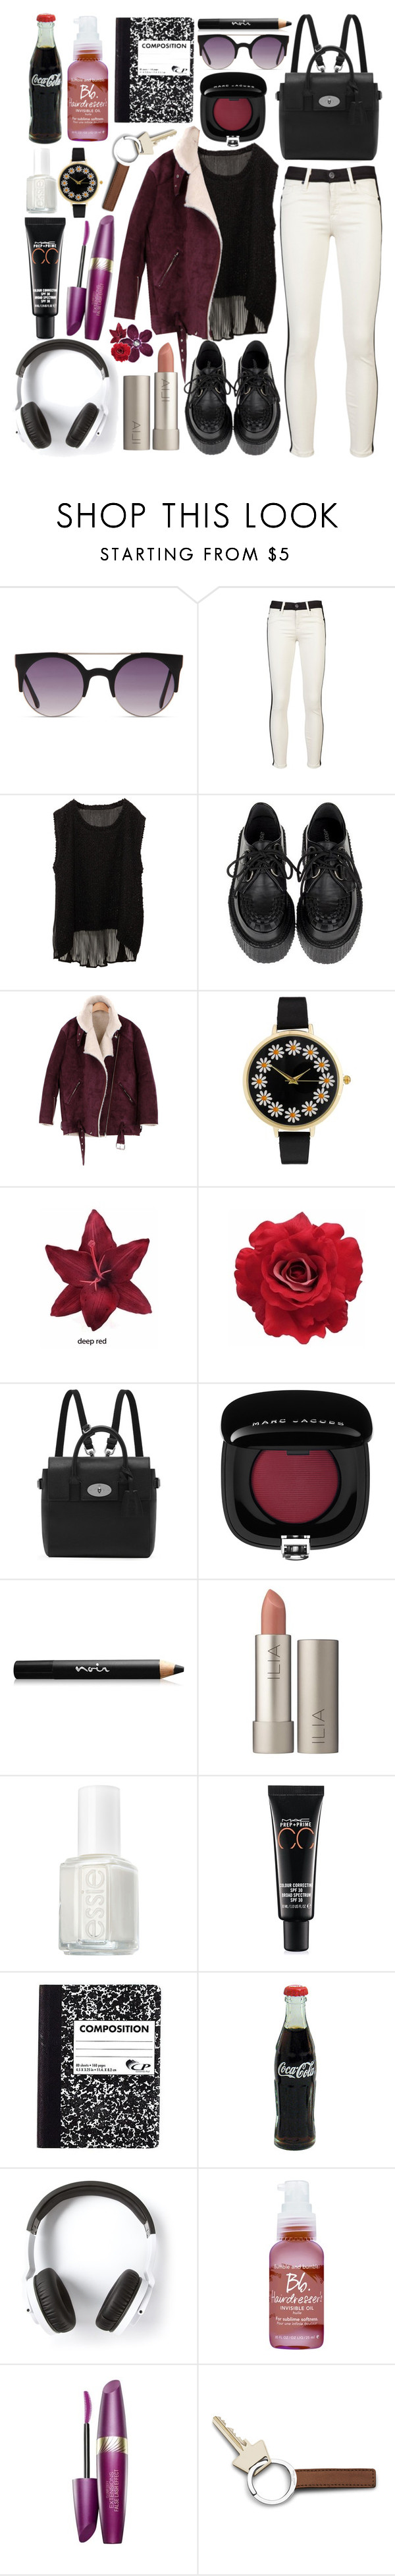 """You've got such a sharp tongue, cuts me like a knife"" by charliiieeex ❤ liked on Polyvore featuring Hudson Jeans, MDKN, ASOS, Clips, Mulberry, Marc Jacobs, Noir Cosmetics, Ilia, Essie and MAC Cosmetics"